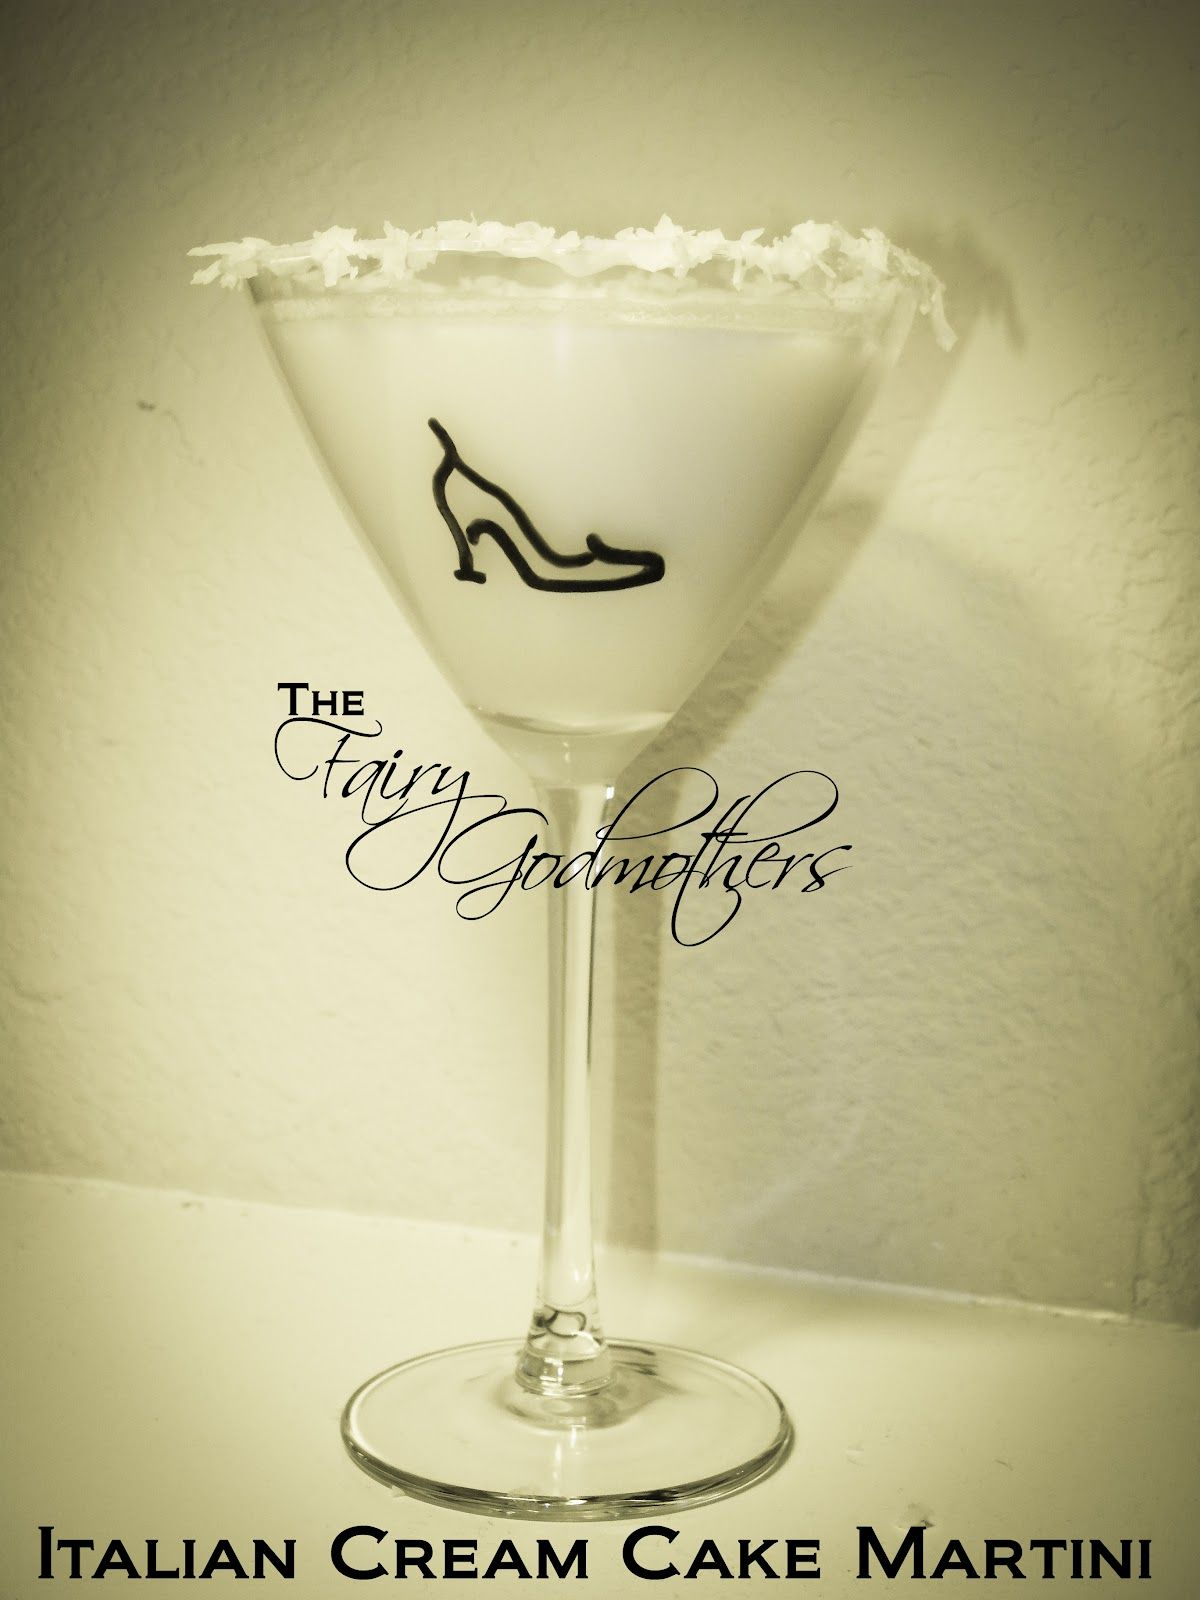 Italian Cream Cake Martini | Stoli Ideas | Pinterest | Italian cream ...